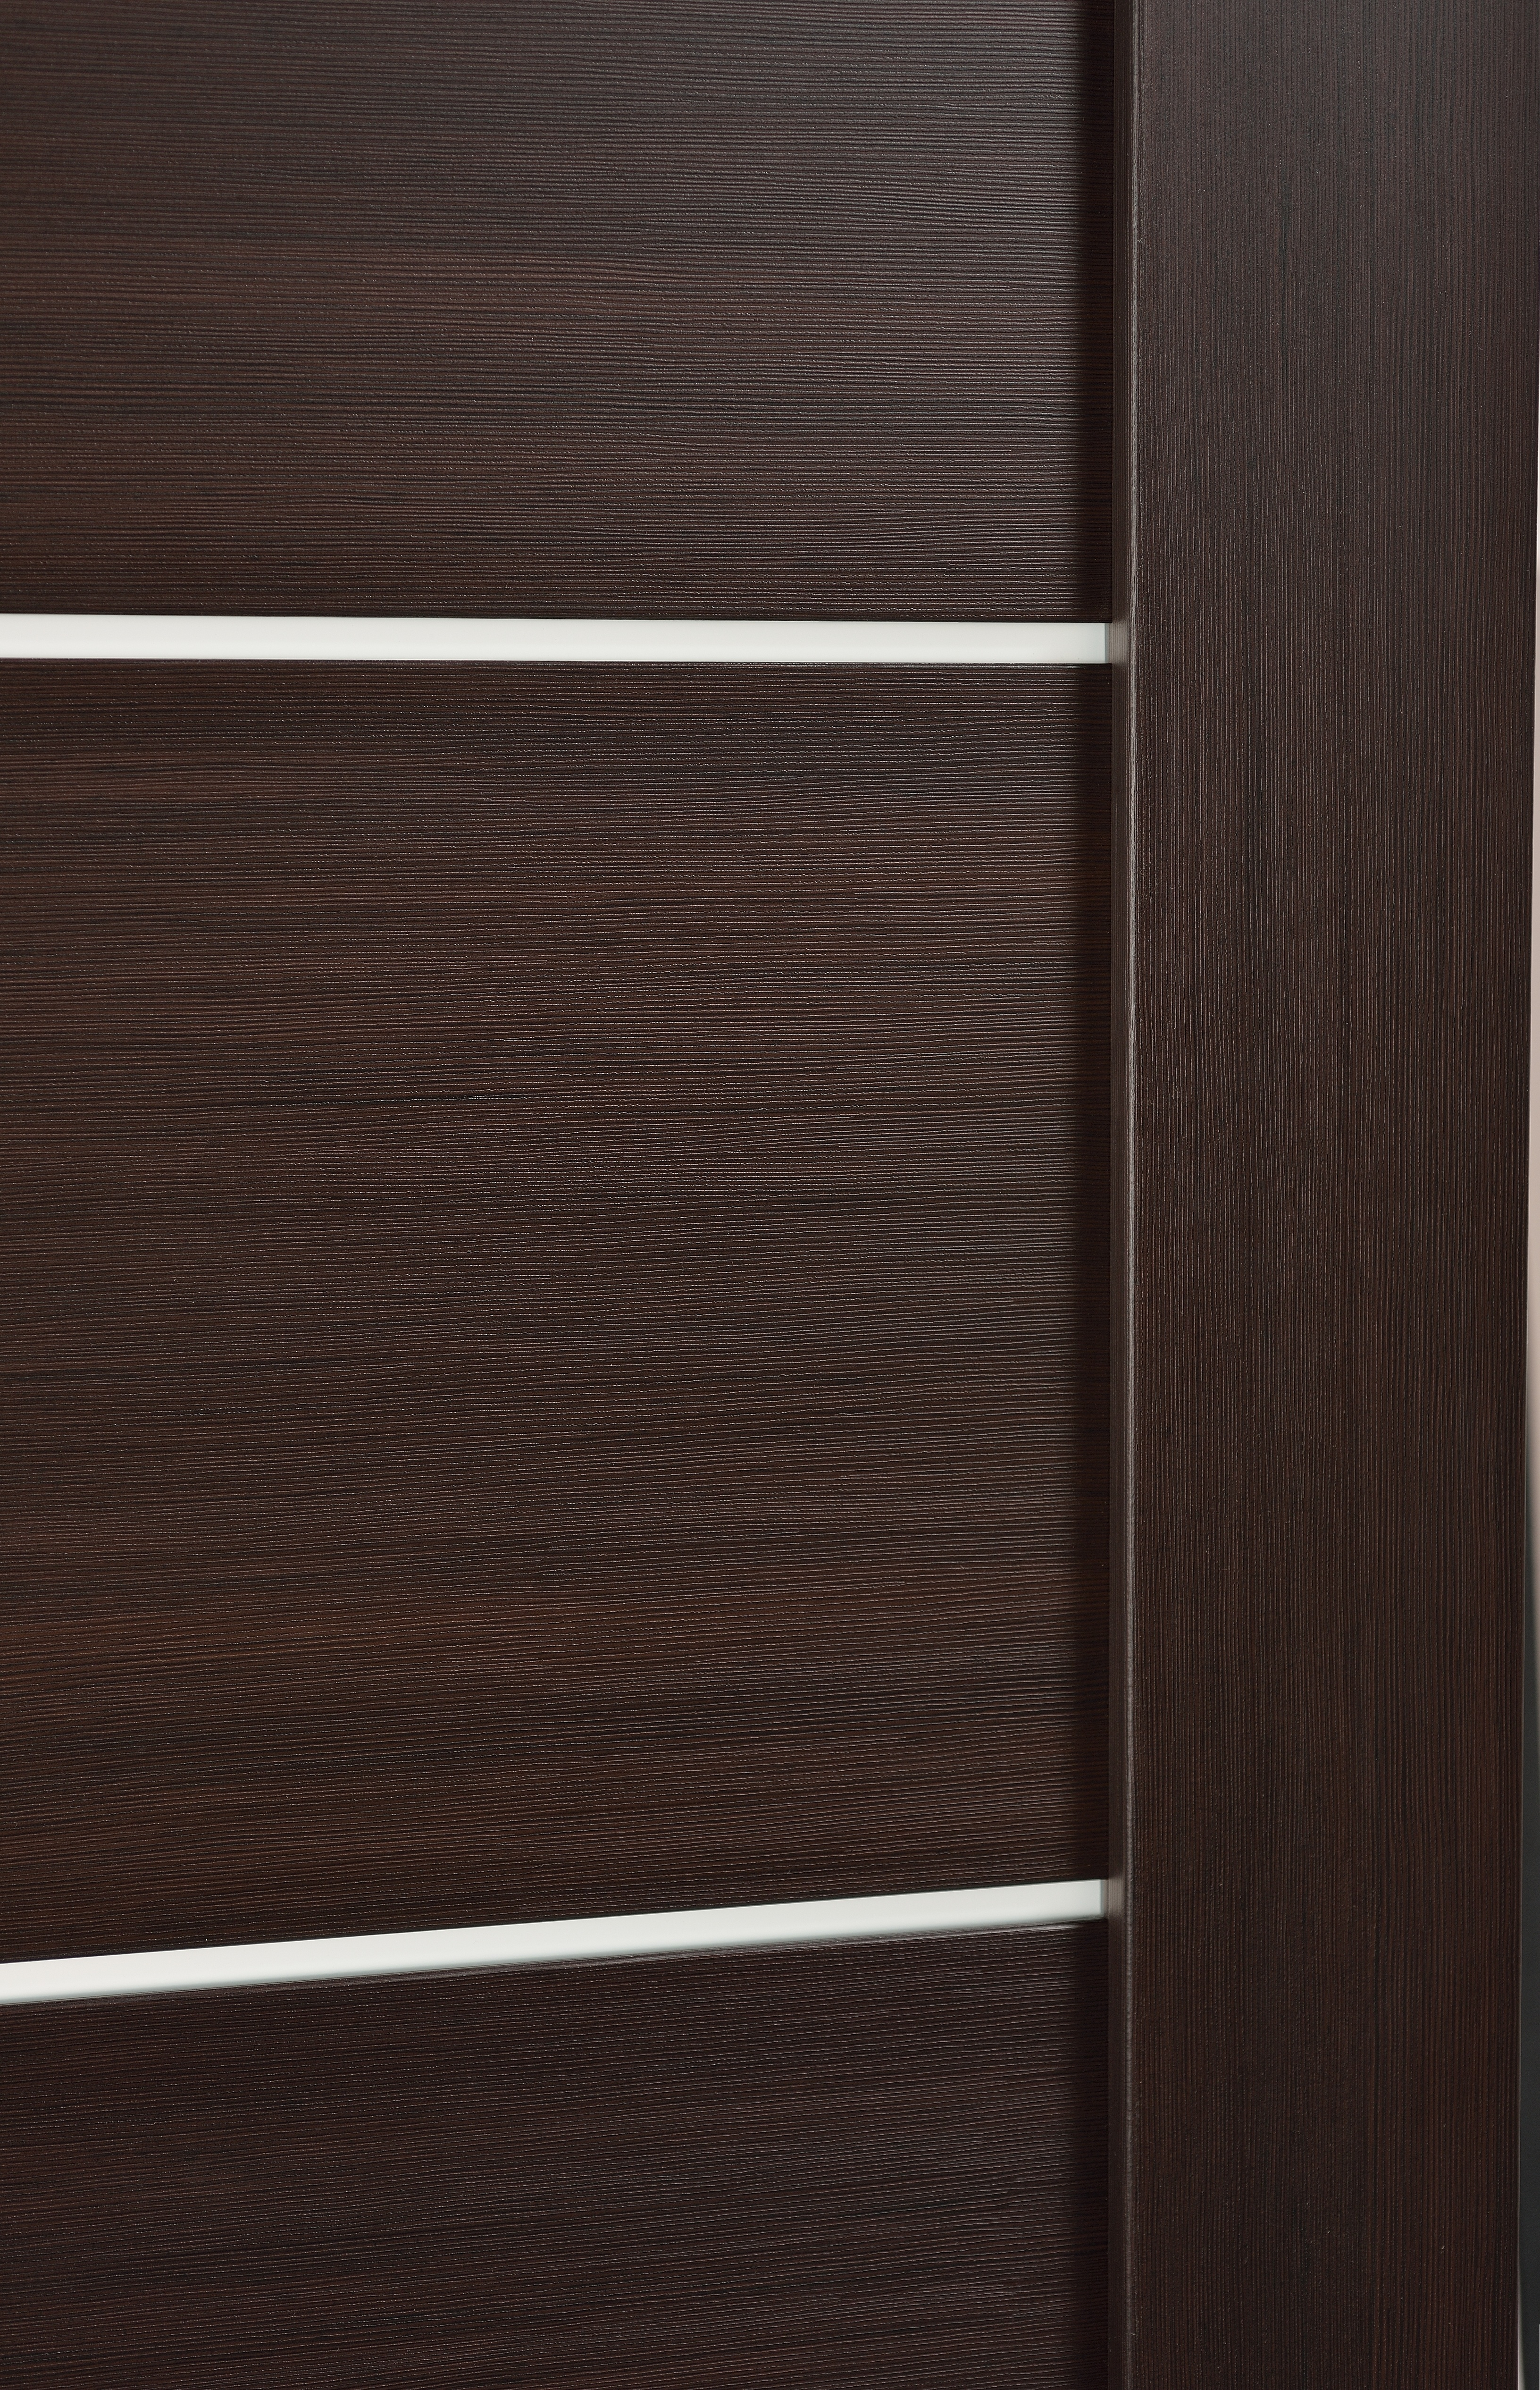 Image Tia Interior Door Eco Wenge 1